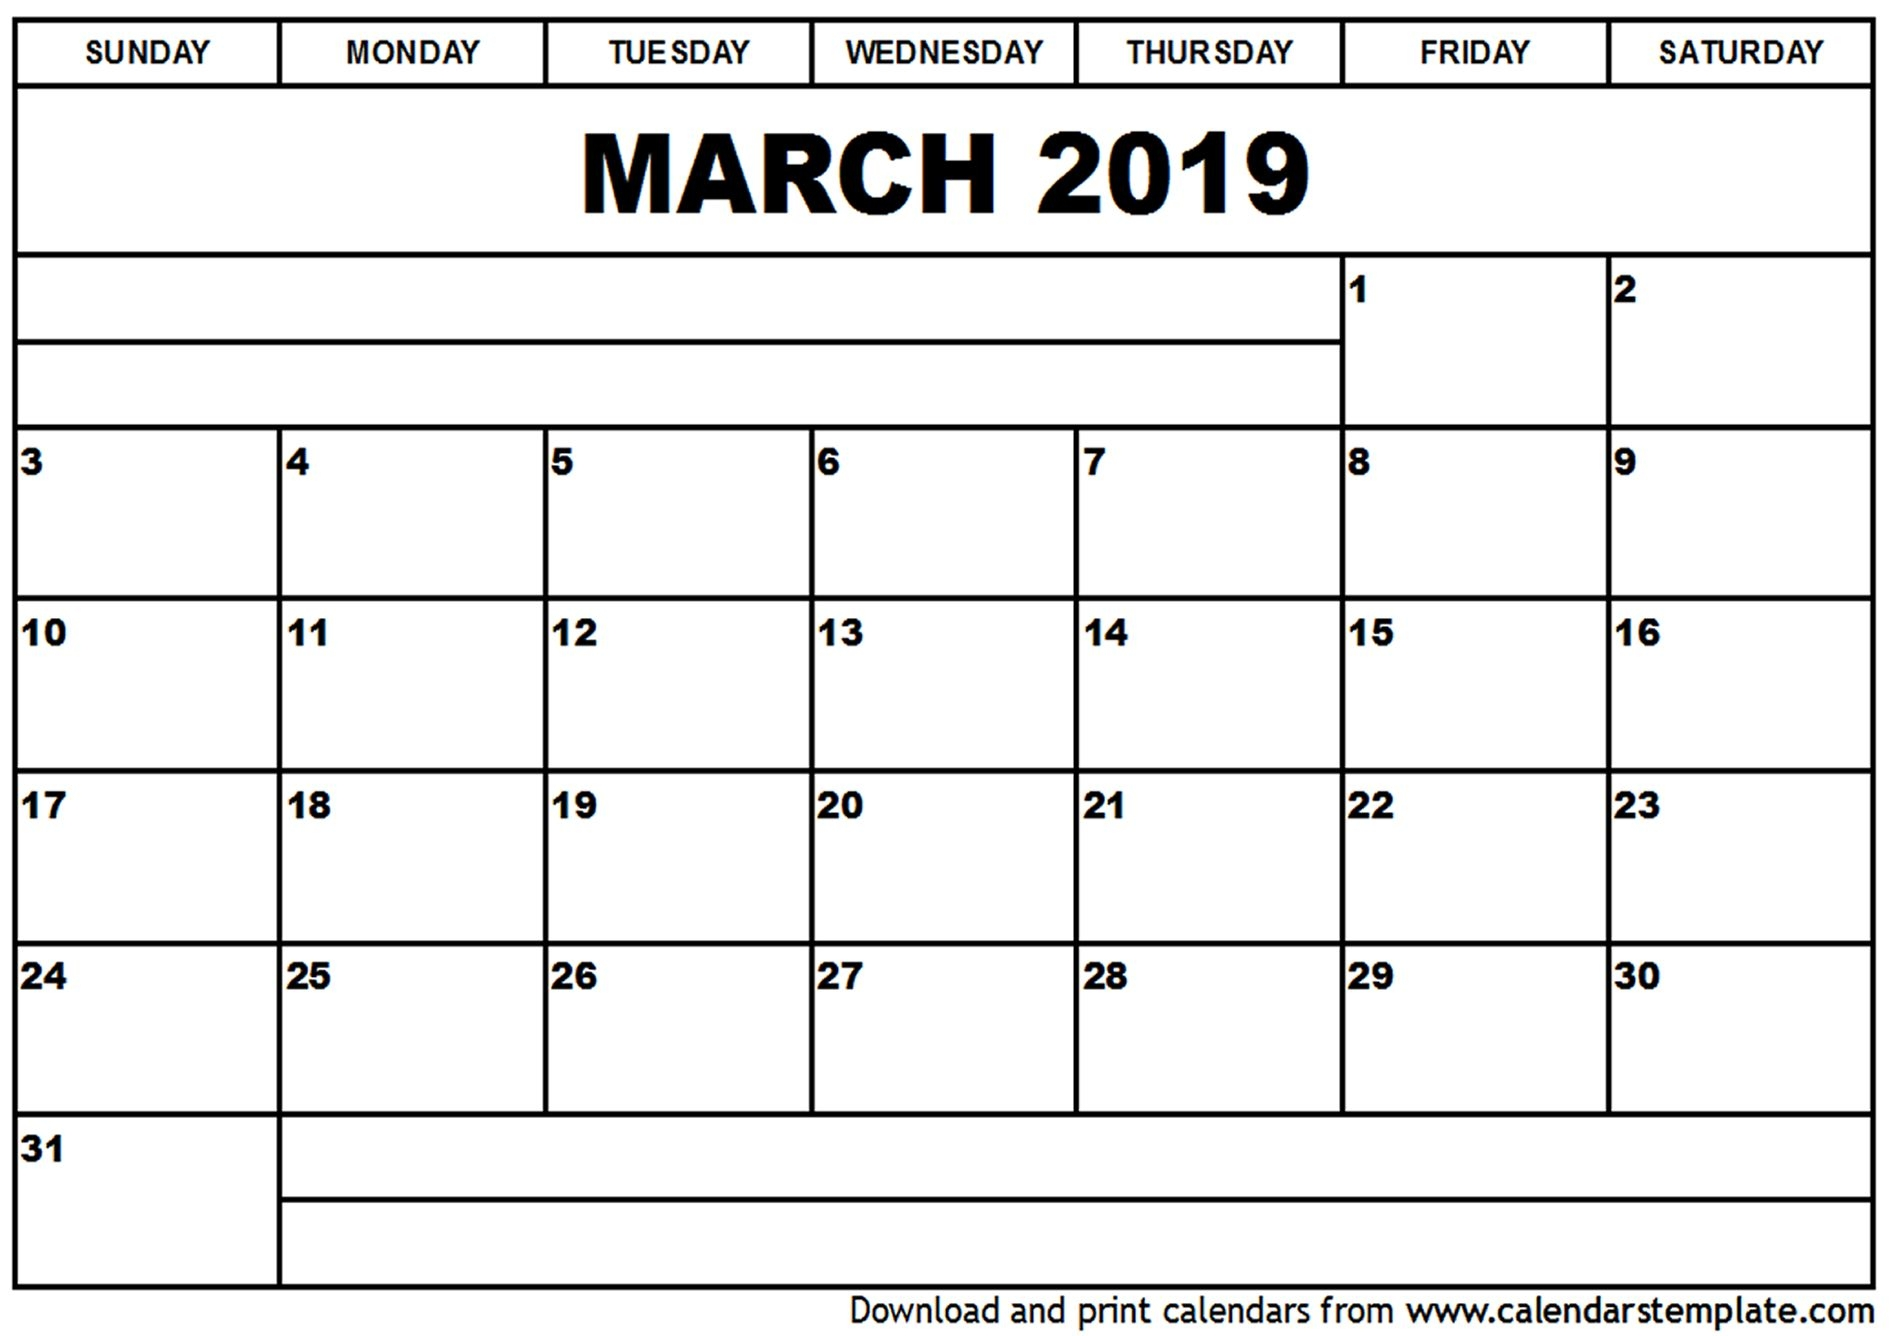 Hebrew Calendar Year 2019 With March 13 Format Example